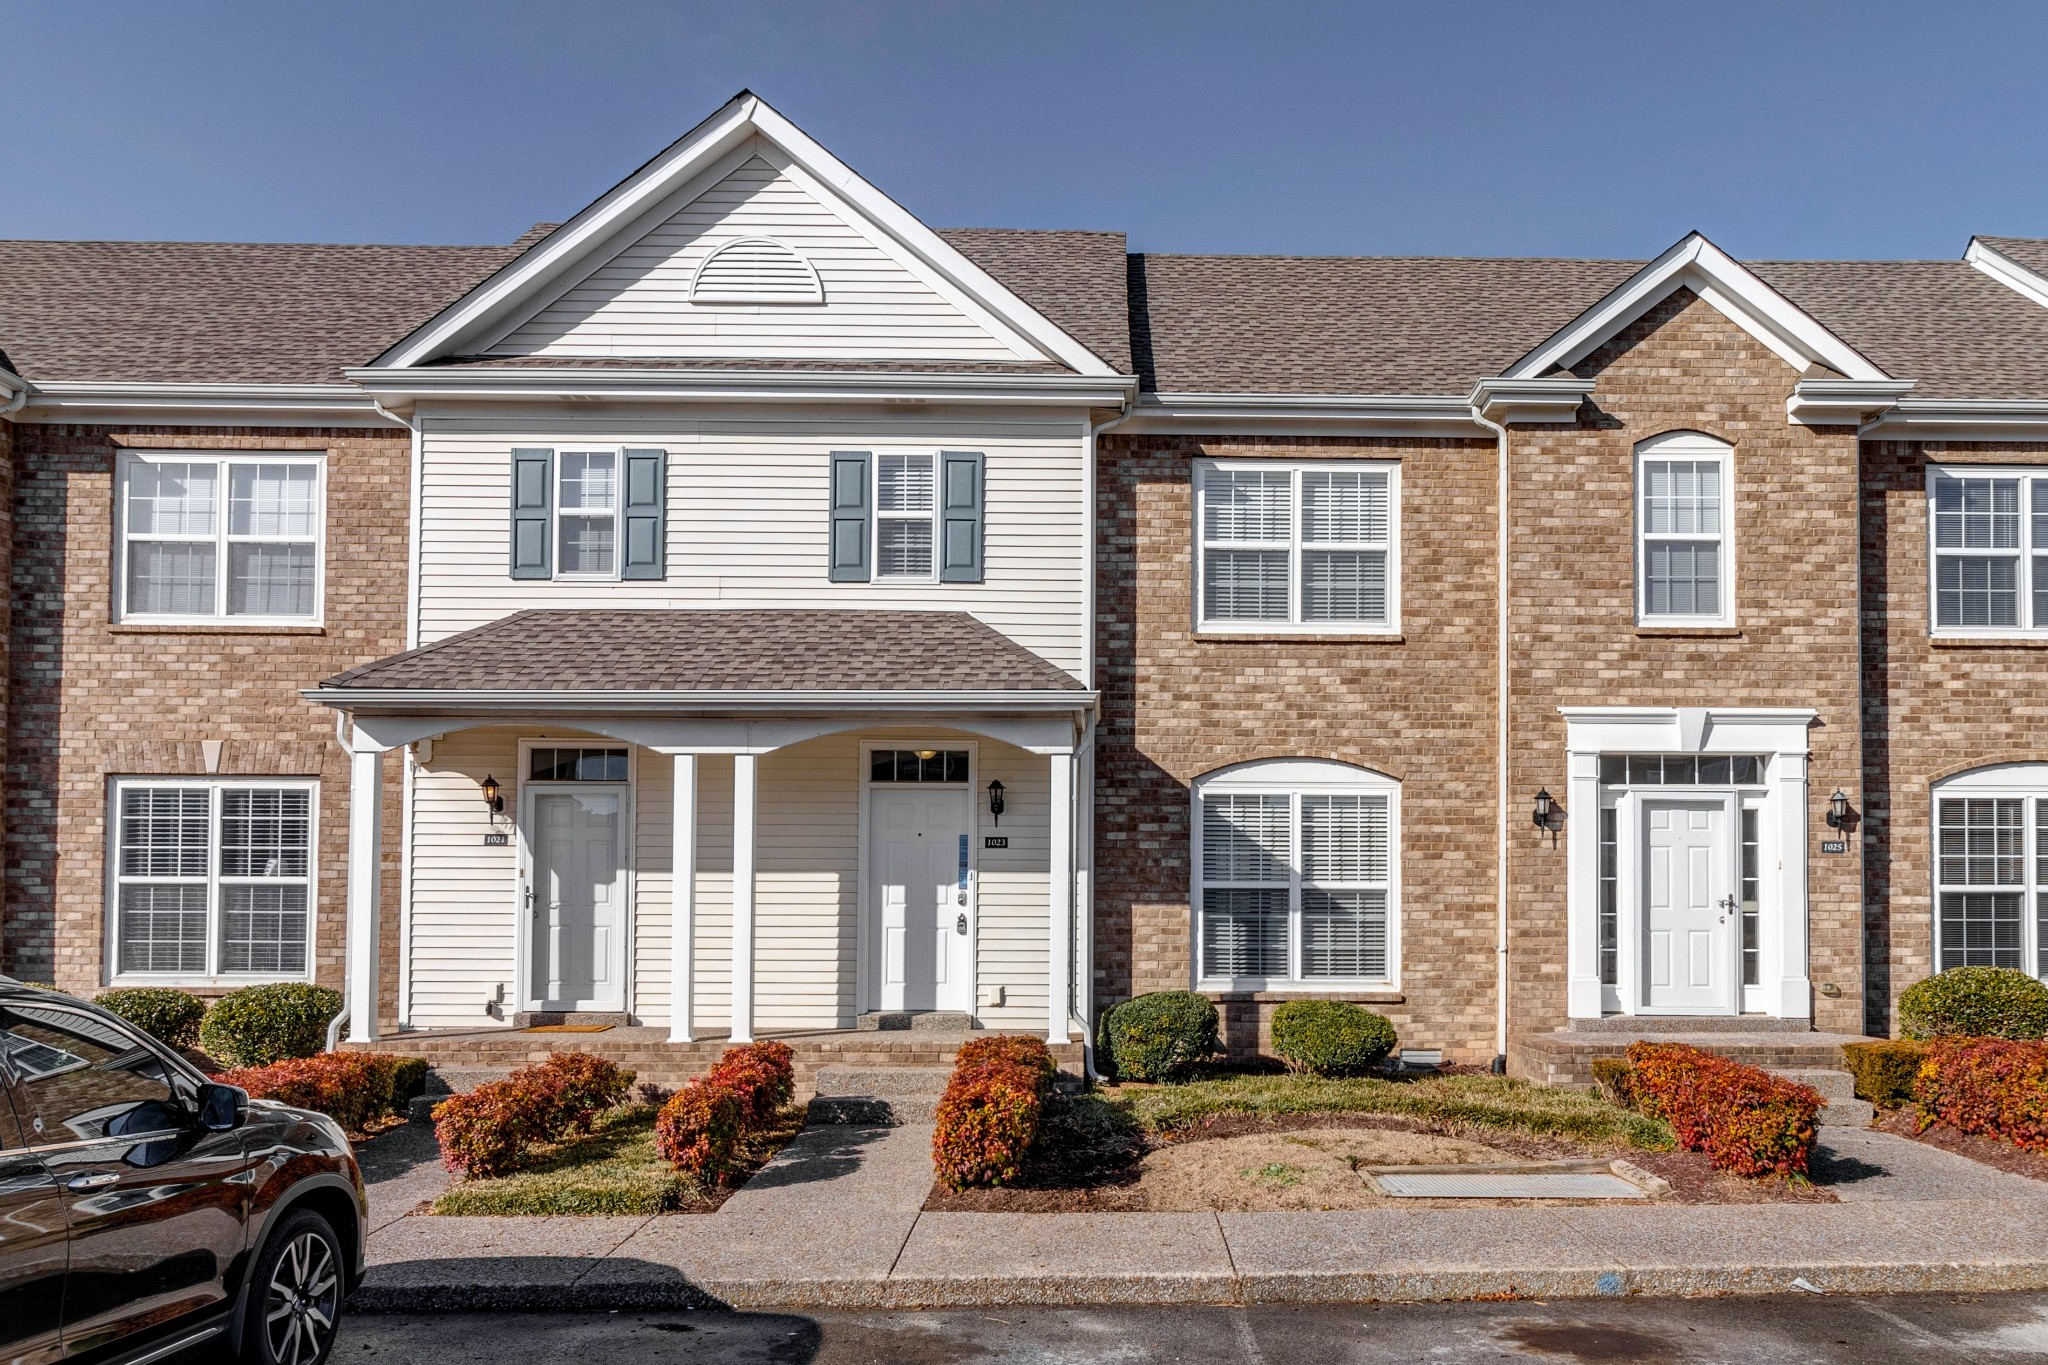 Charming 2 bedroom, 2.5 bathroom townhome! Home features large bedrooms with their own bathroom, vaulted ceilings, walk-in closets, and hardwood floors!